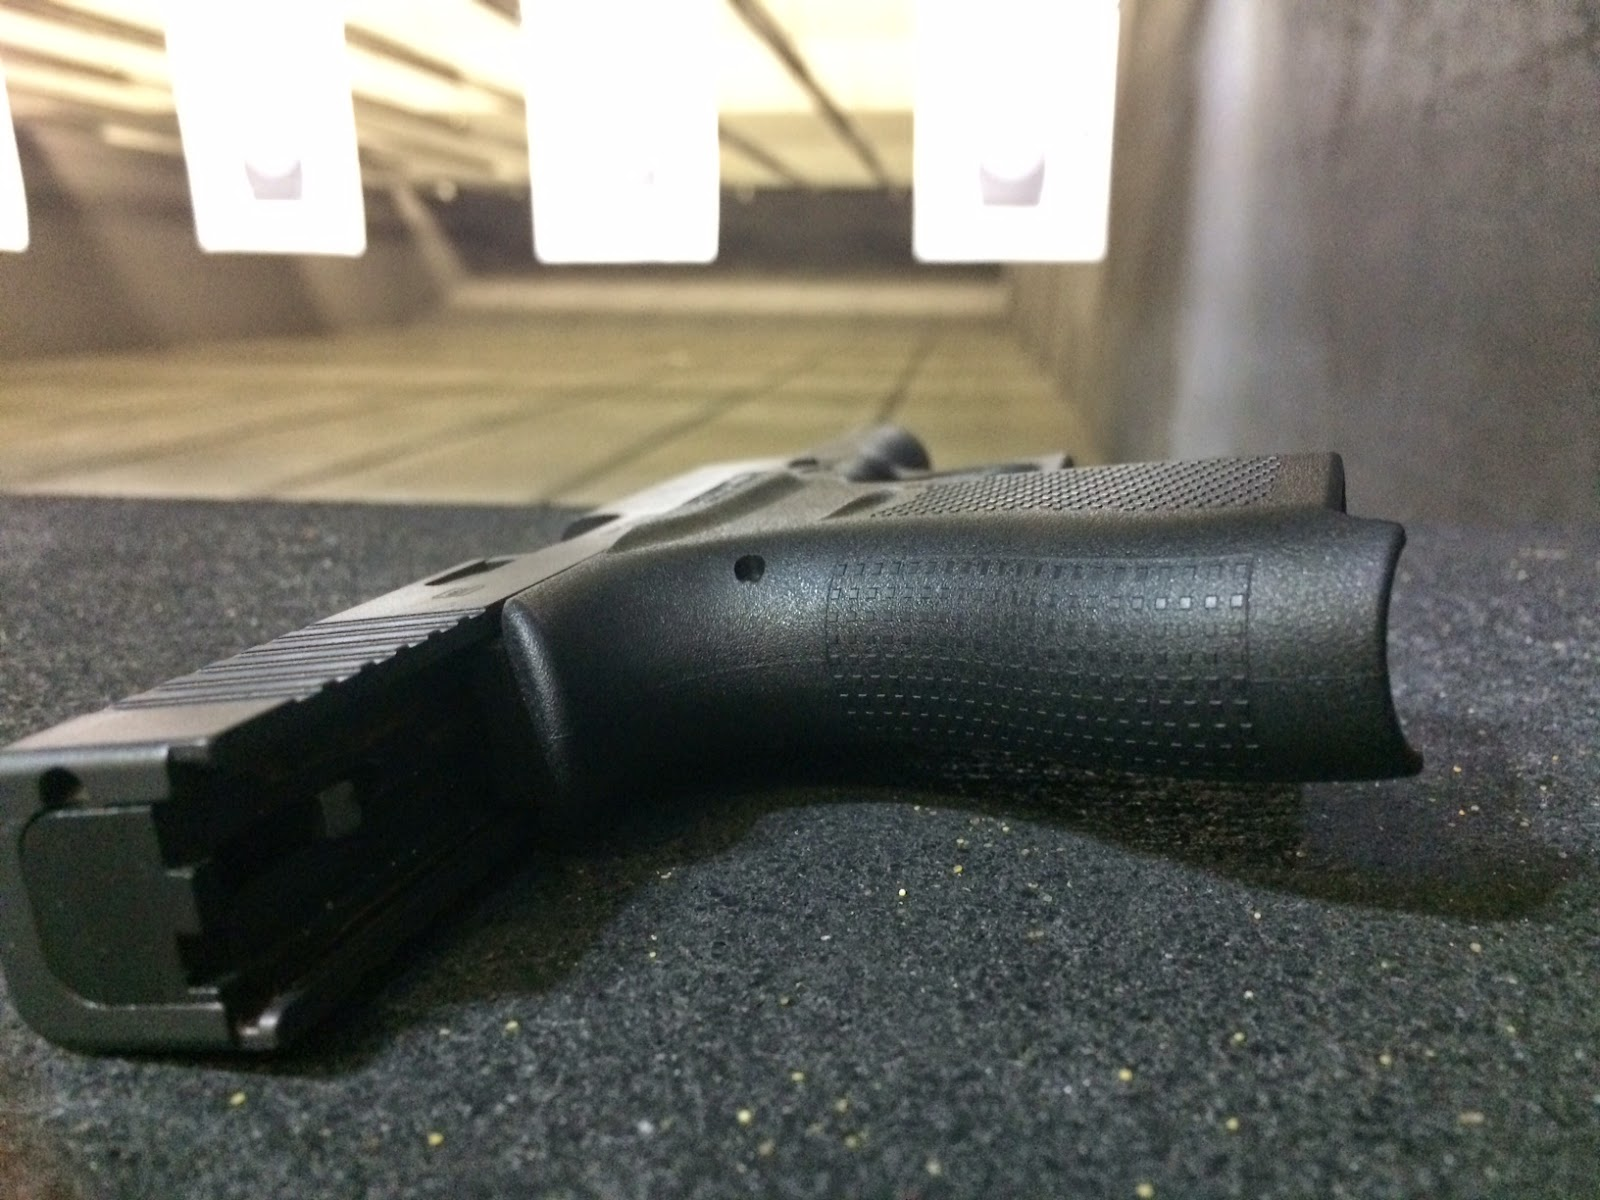 The Glock 43 I fired at the NRA AM